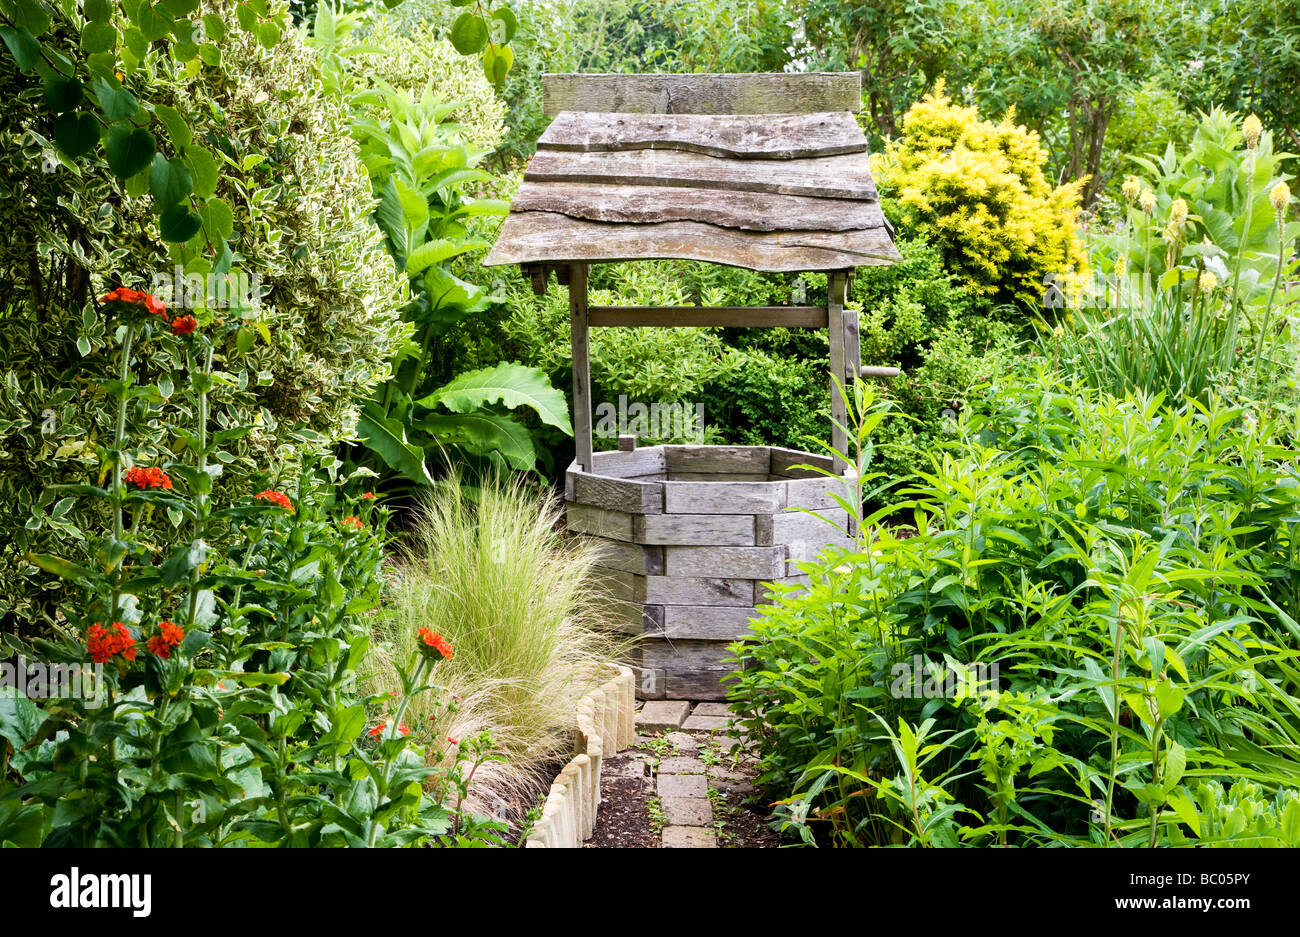 A Corner Of The Wishing Well Garden At The TWIGS Gardens In Swindon  Wiltshire England UK